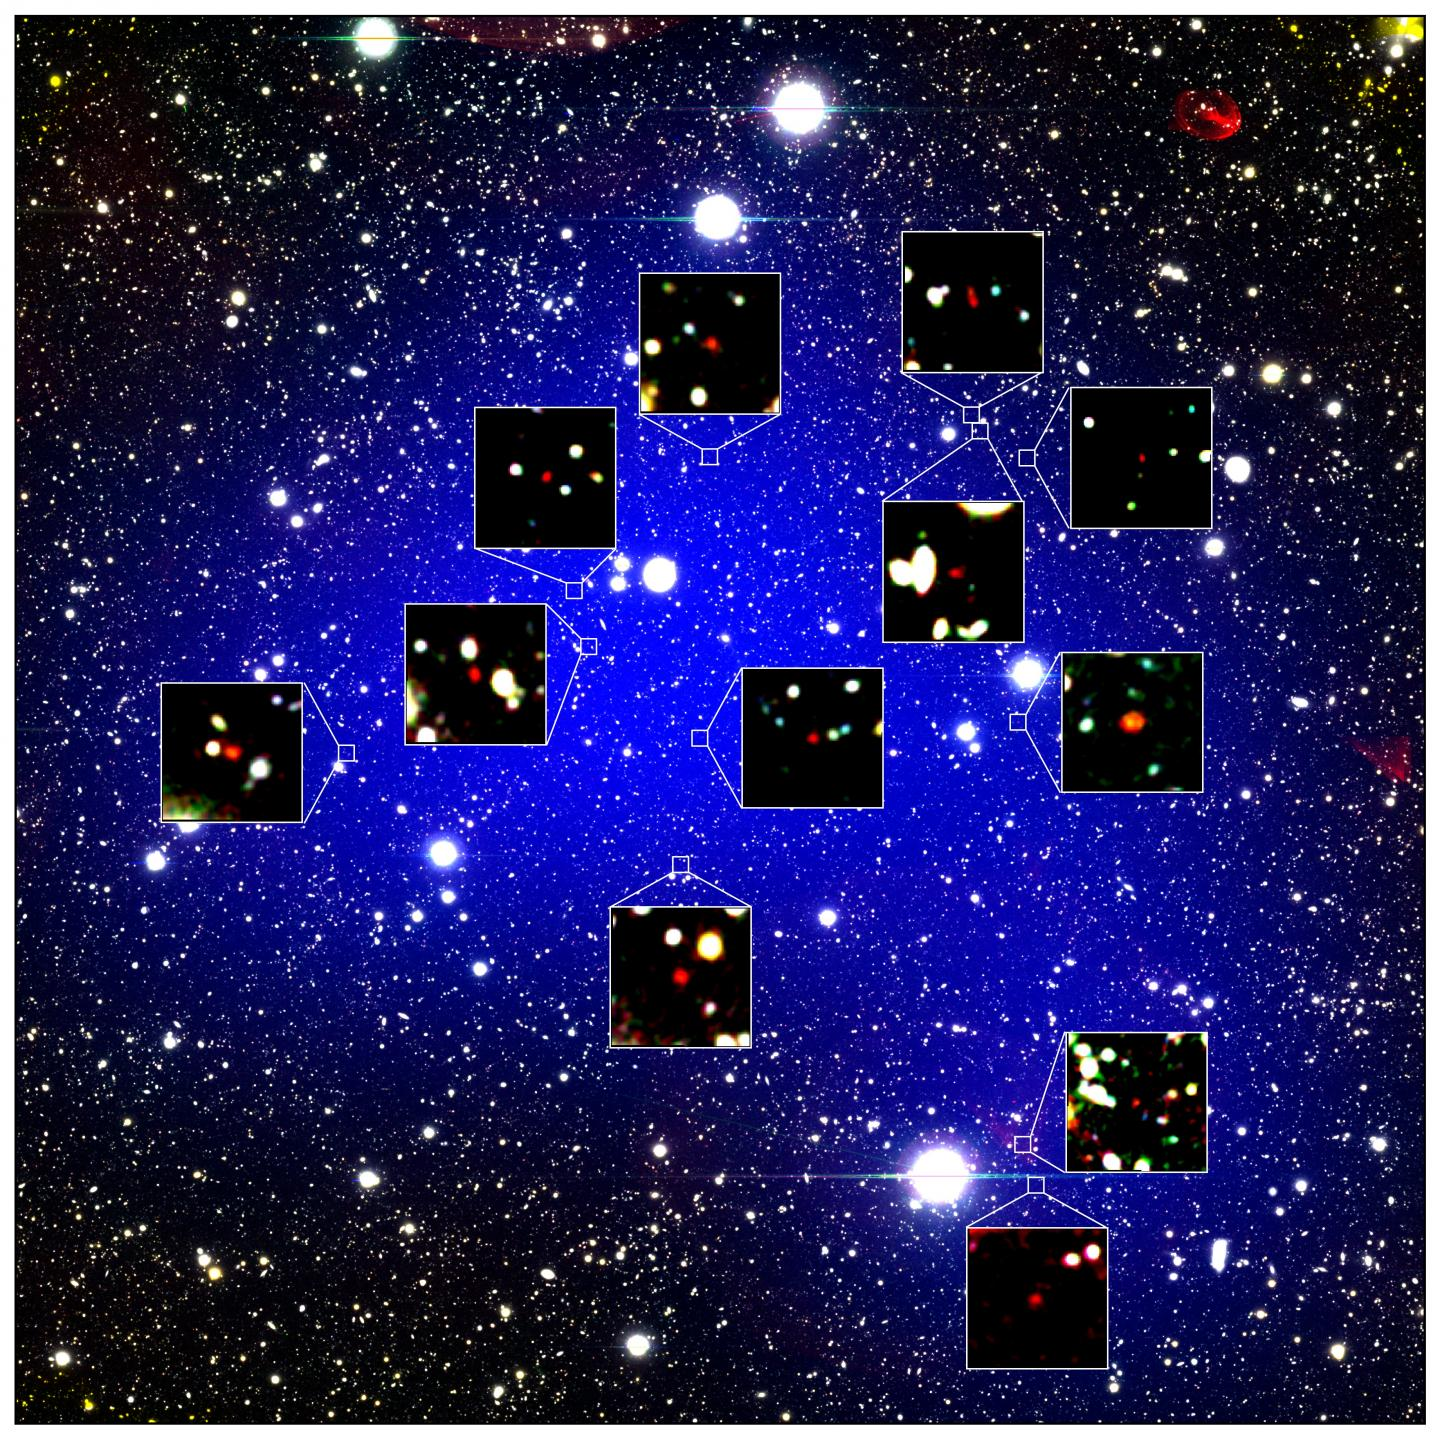 The Most Distant Protocluster Discovered by the Subaru Telescope